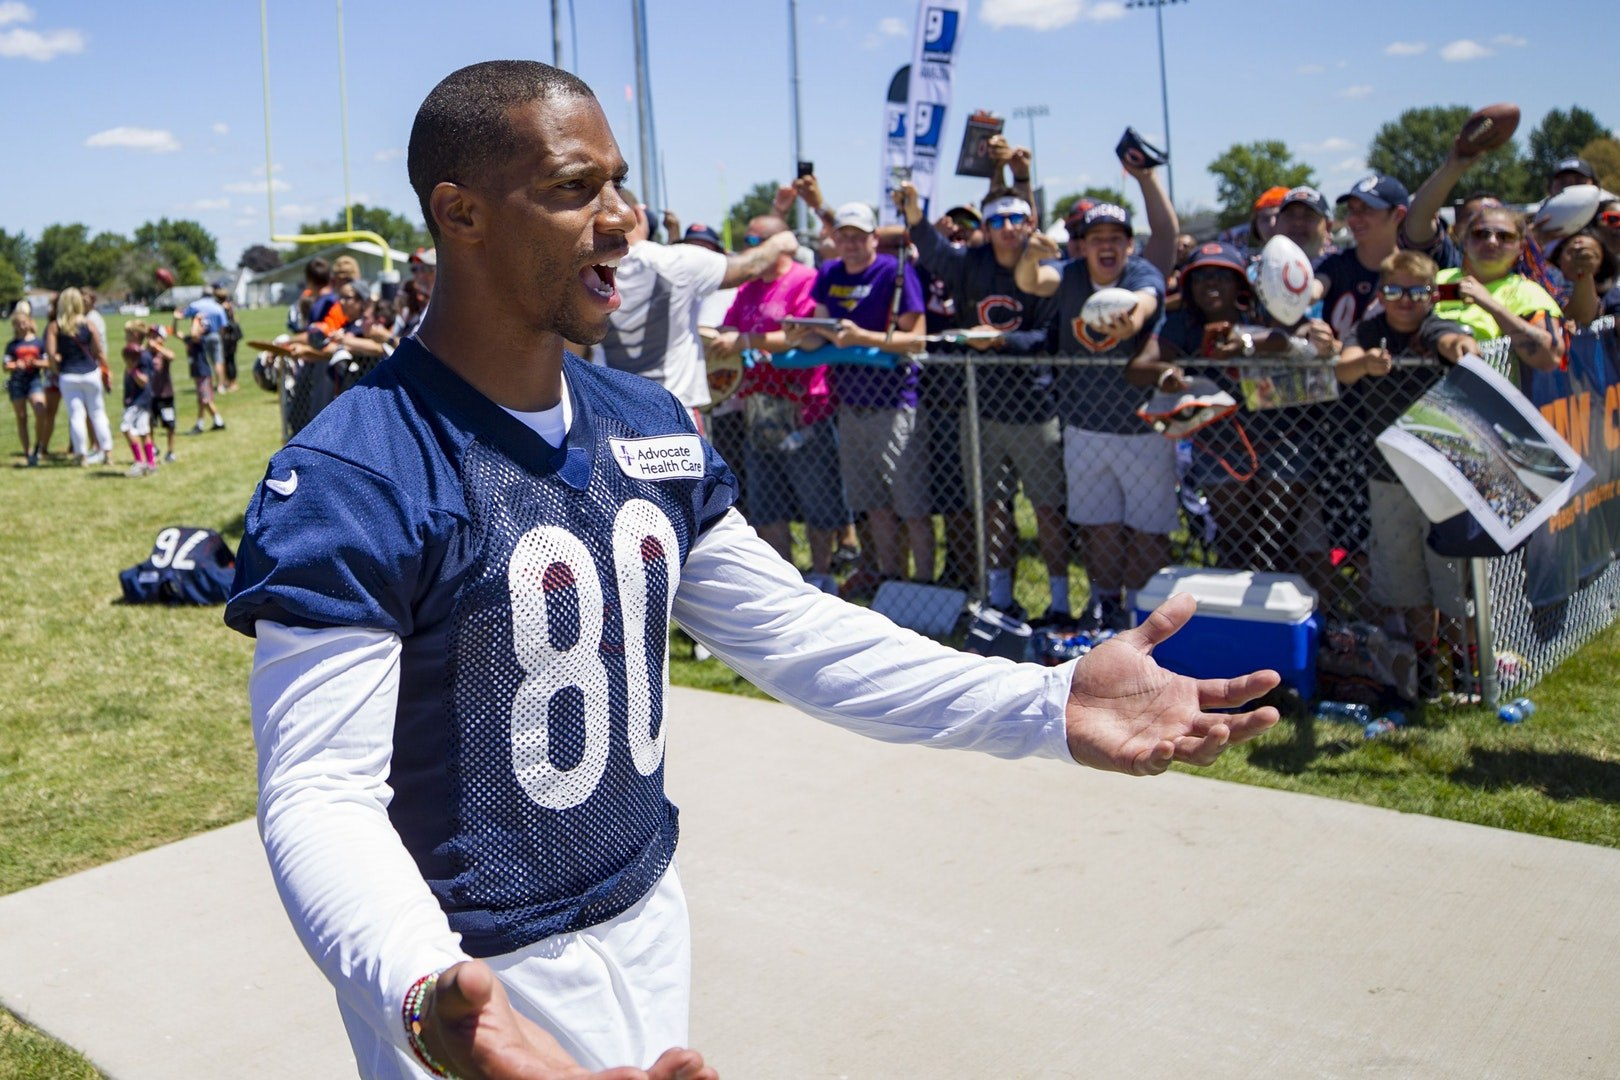 Ex-NFL Star Victor Cruz Defends Players' Right to Protest